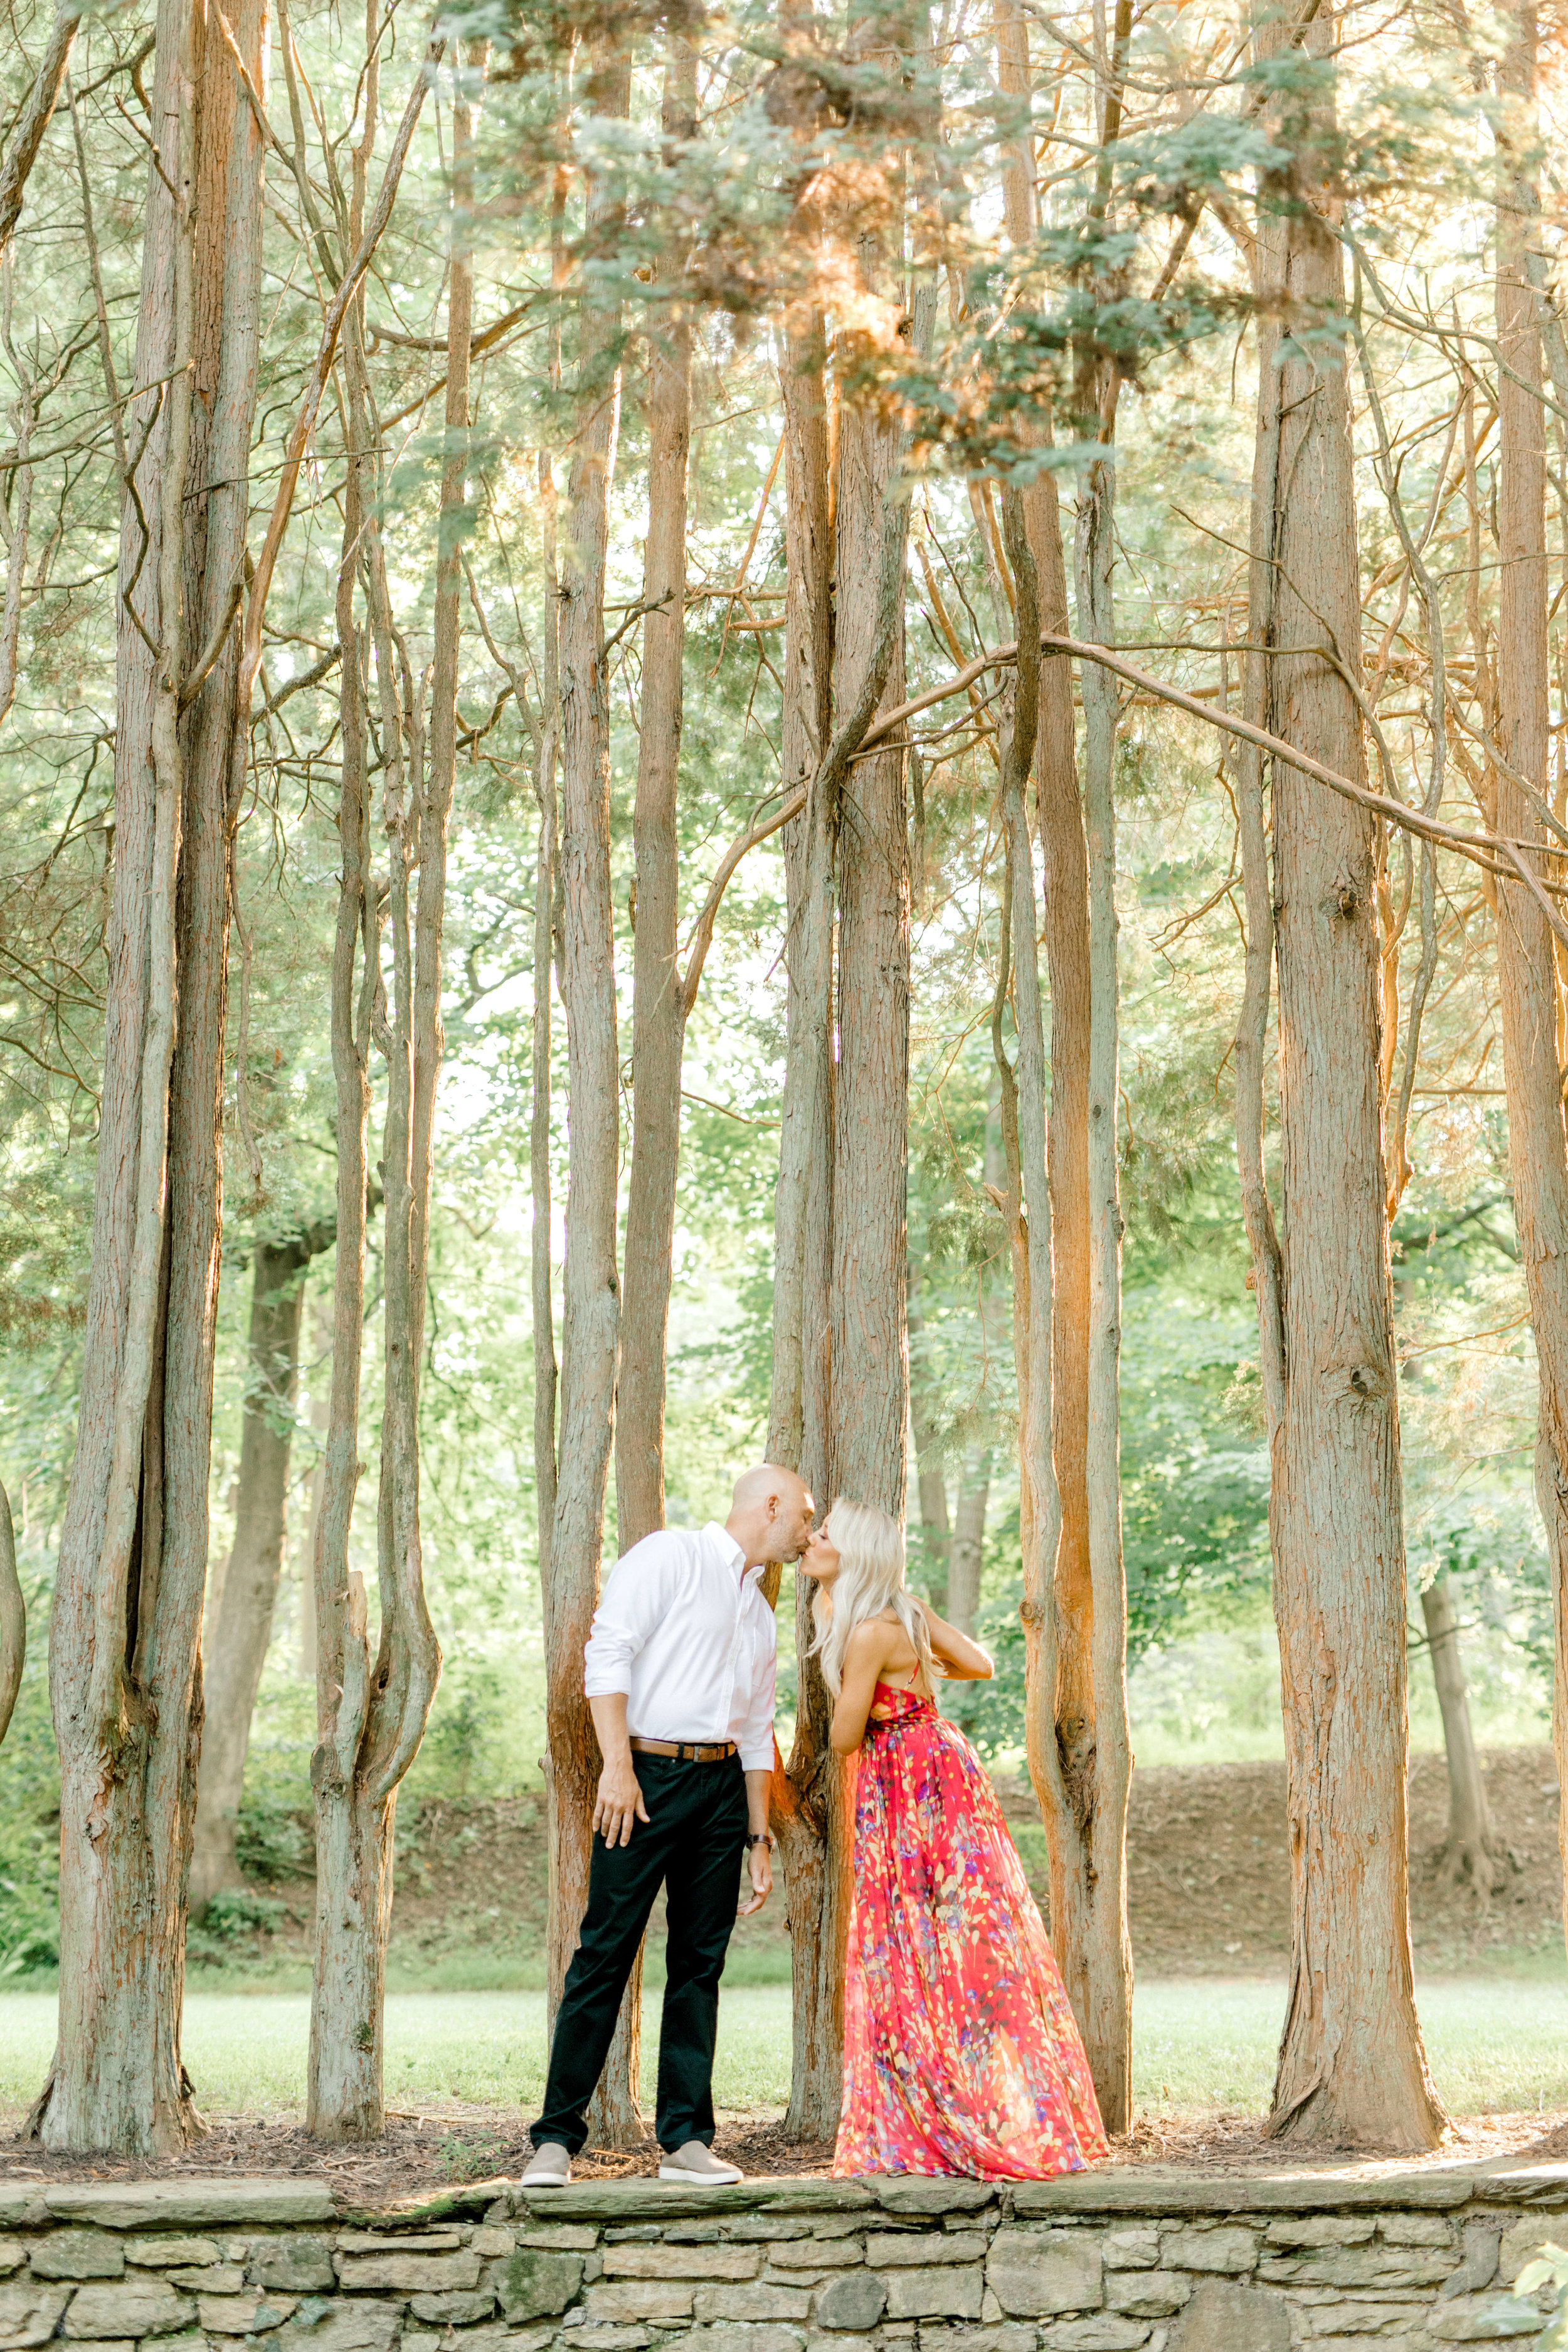 Liz and Bill share a kiss for their romantic sunset woodland engagement session at Parque at Ridley Creek